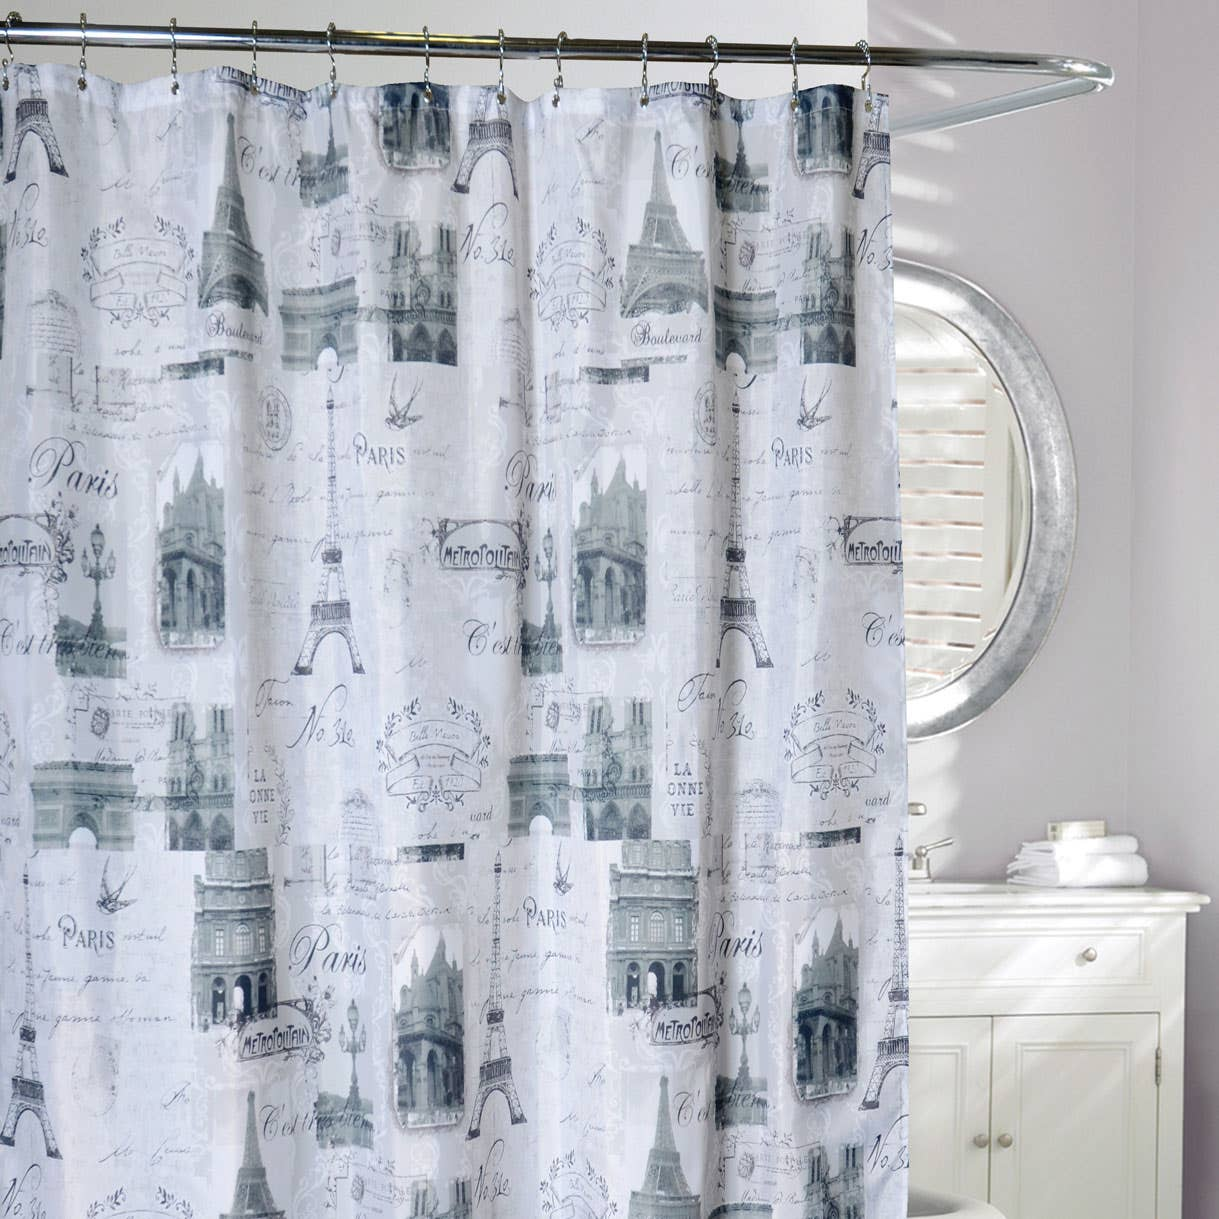 Products in Shower Curtains, Bath on Linen Chest